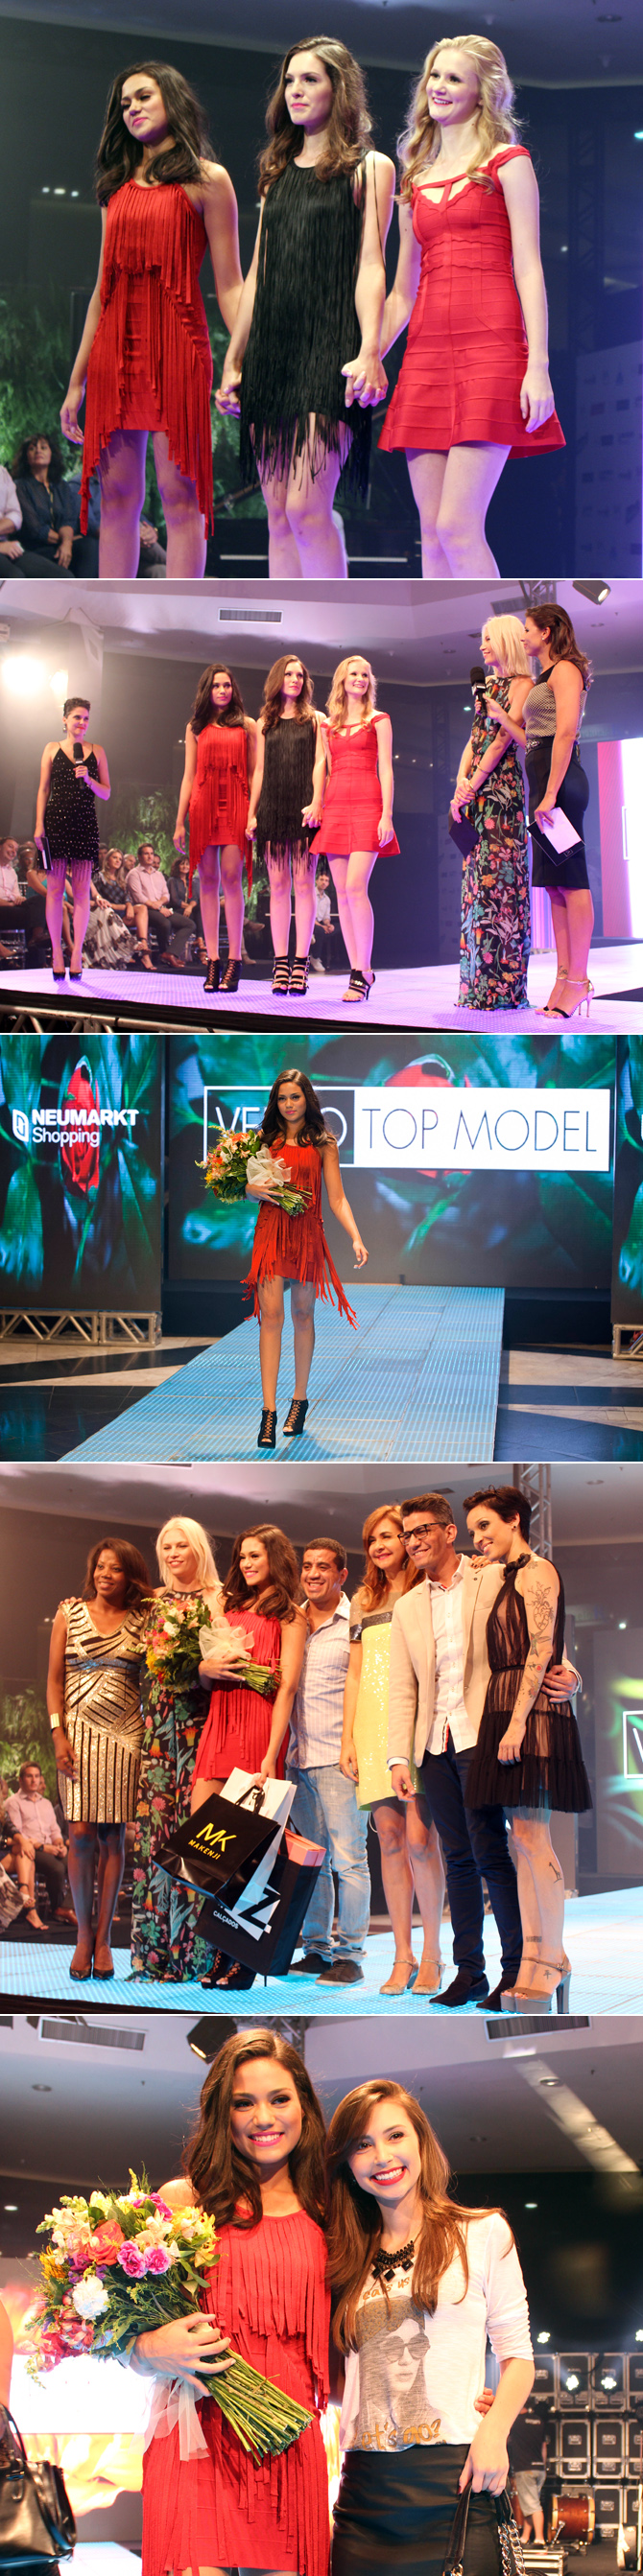 04 - Final Verão Top Model 2014 - VTM 2014 - Neumarkt Shopping copy